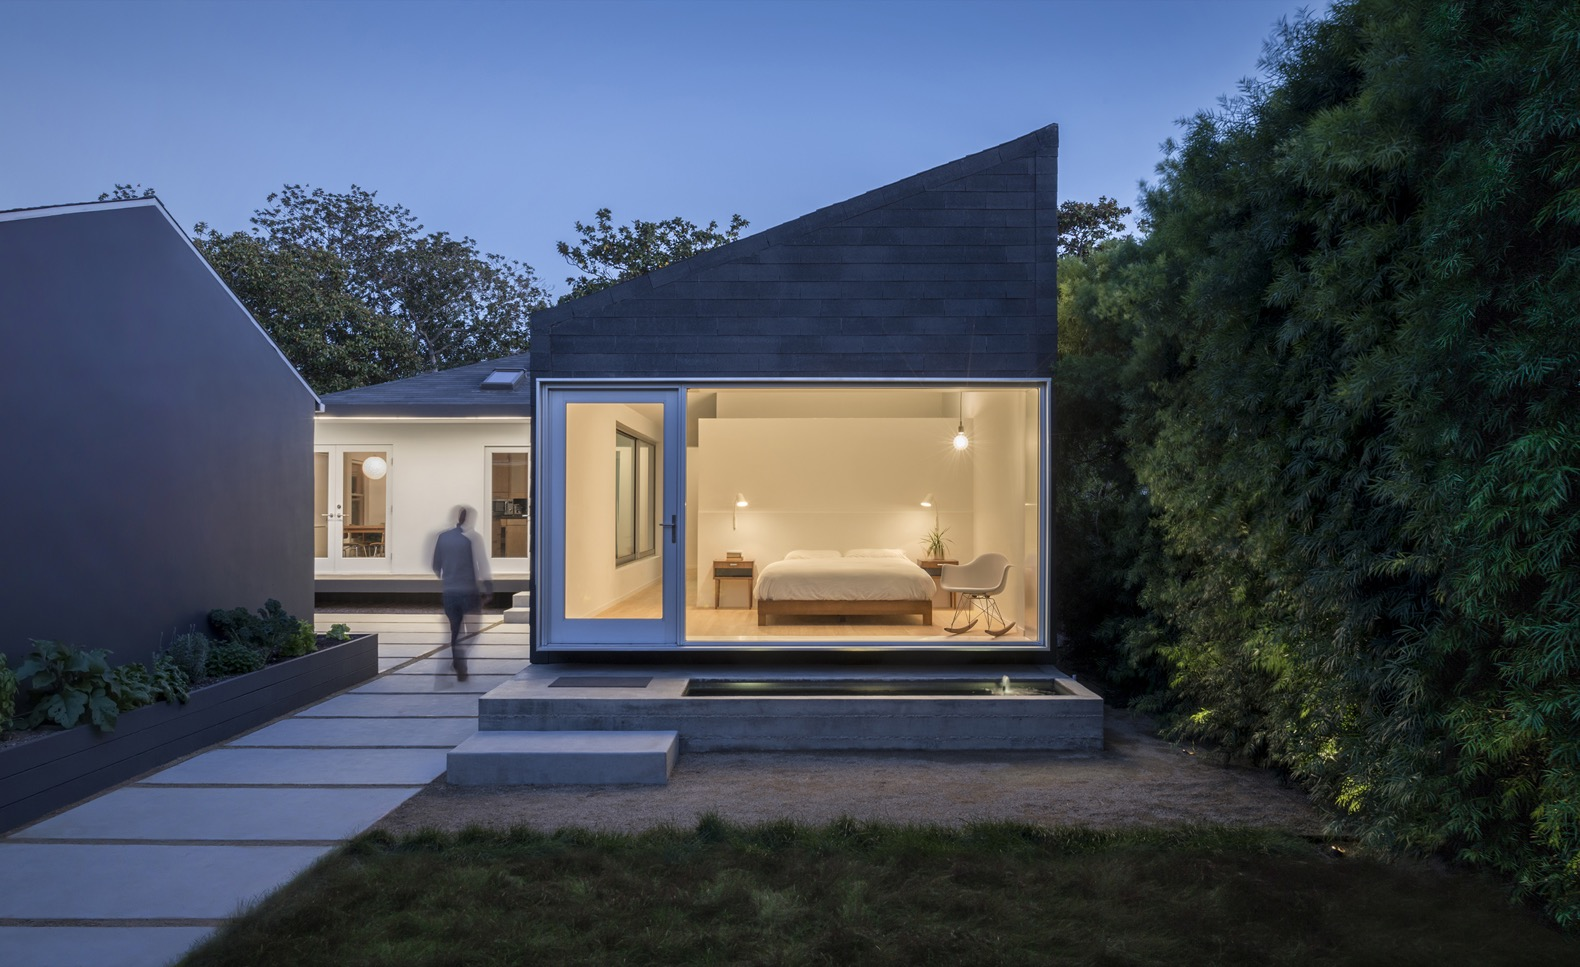 An old bungalow is transformed into an award-winning home with a modern extension